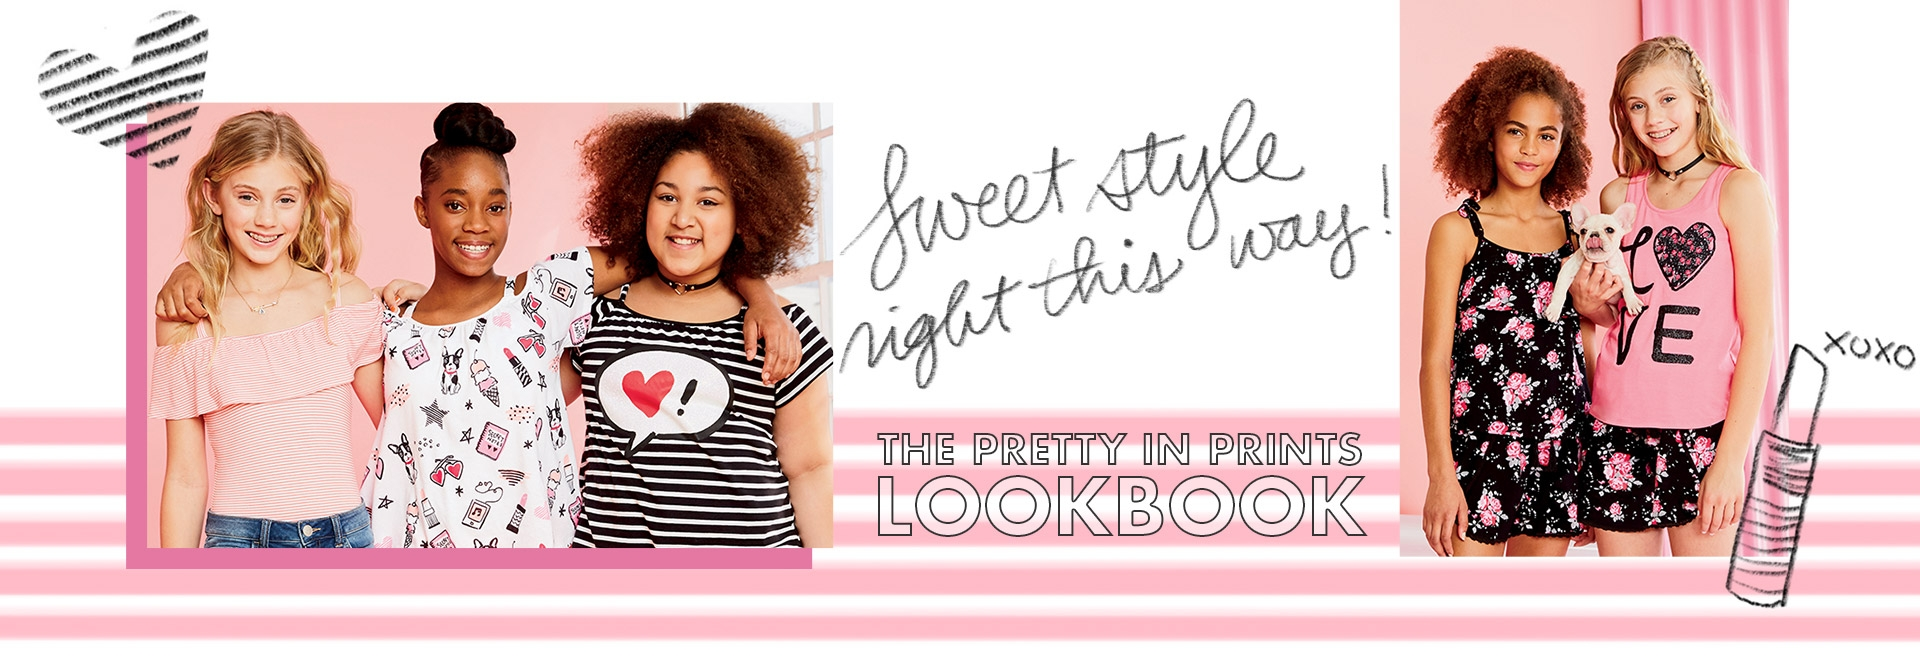 Explore the pretty in prints lookbook!